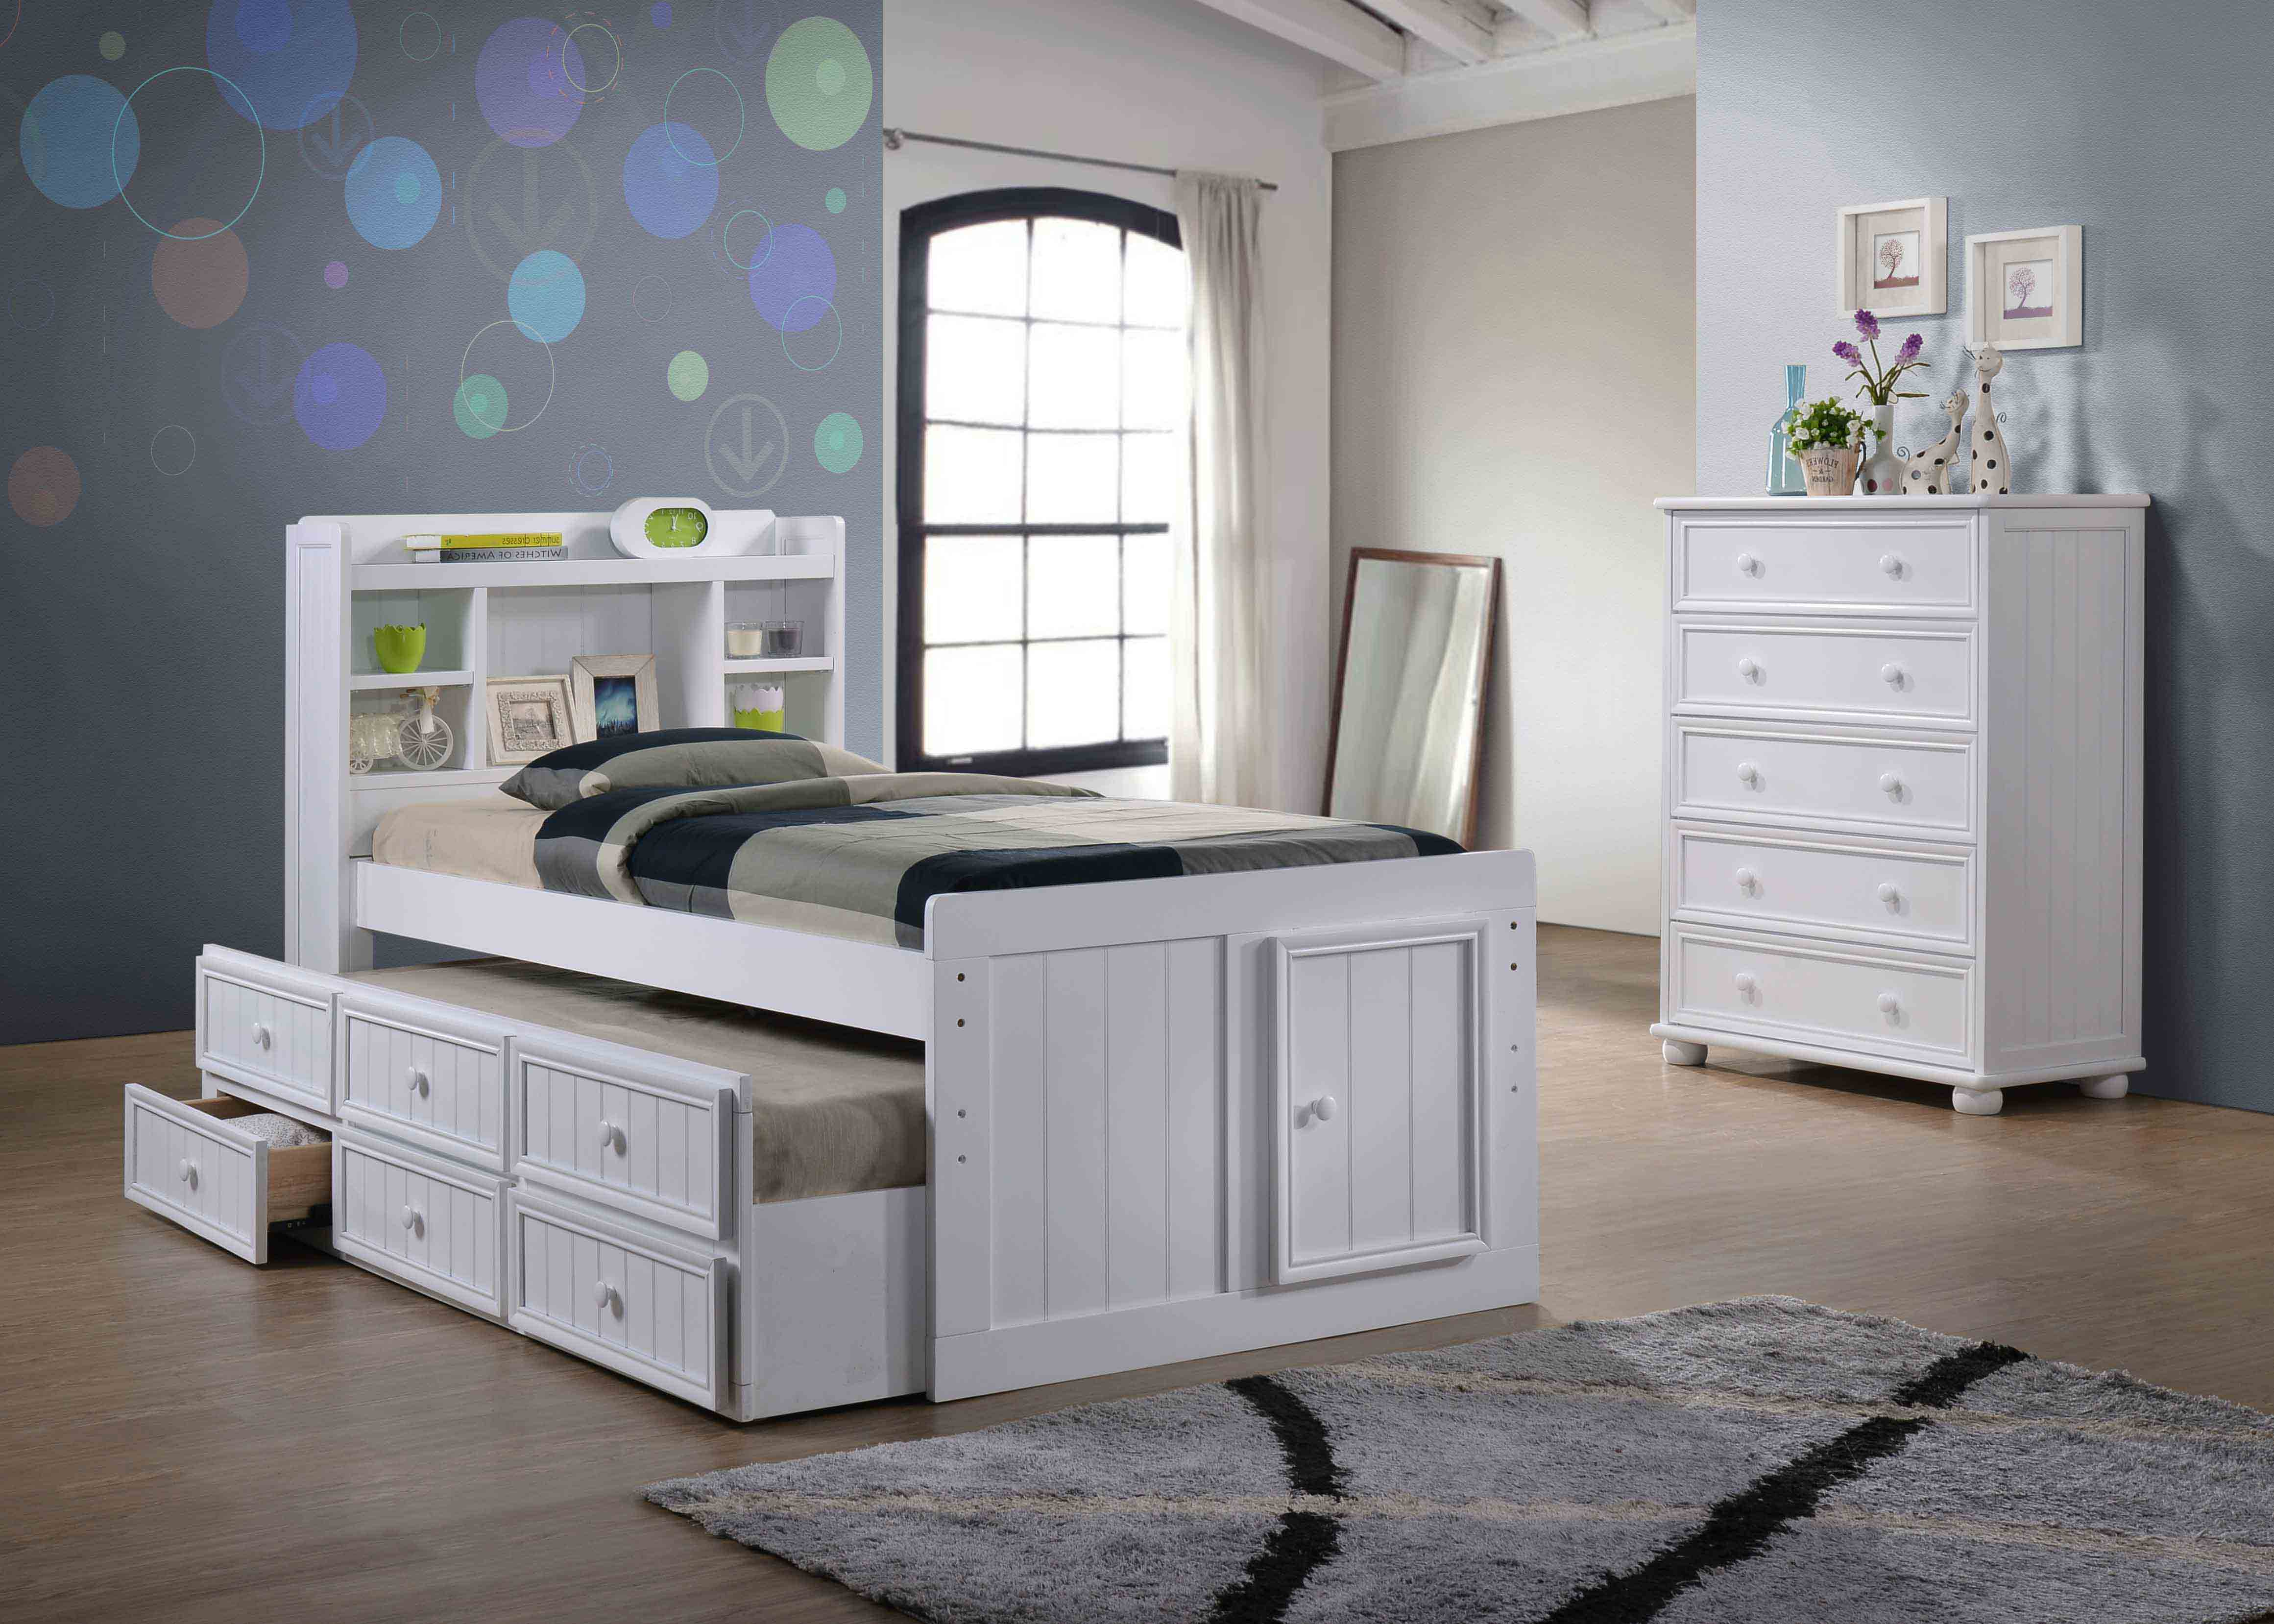 Delightful J.A.Y Furniture U2013 Furniture For Every Need